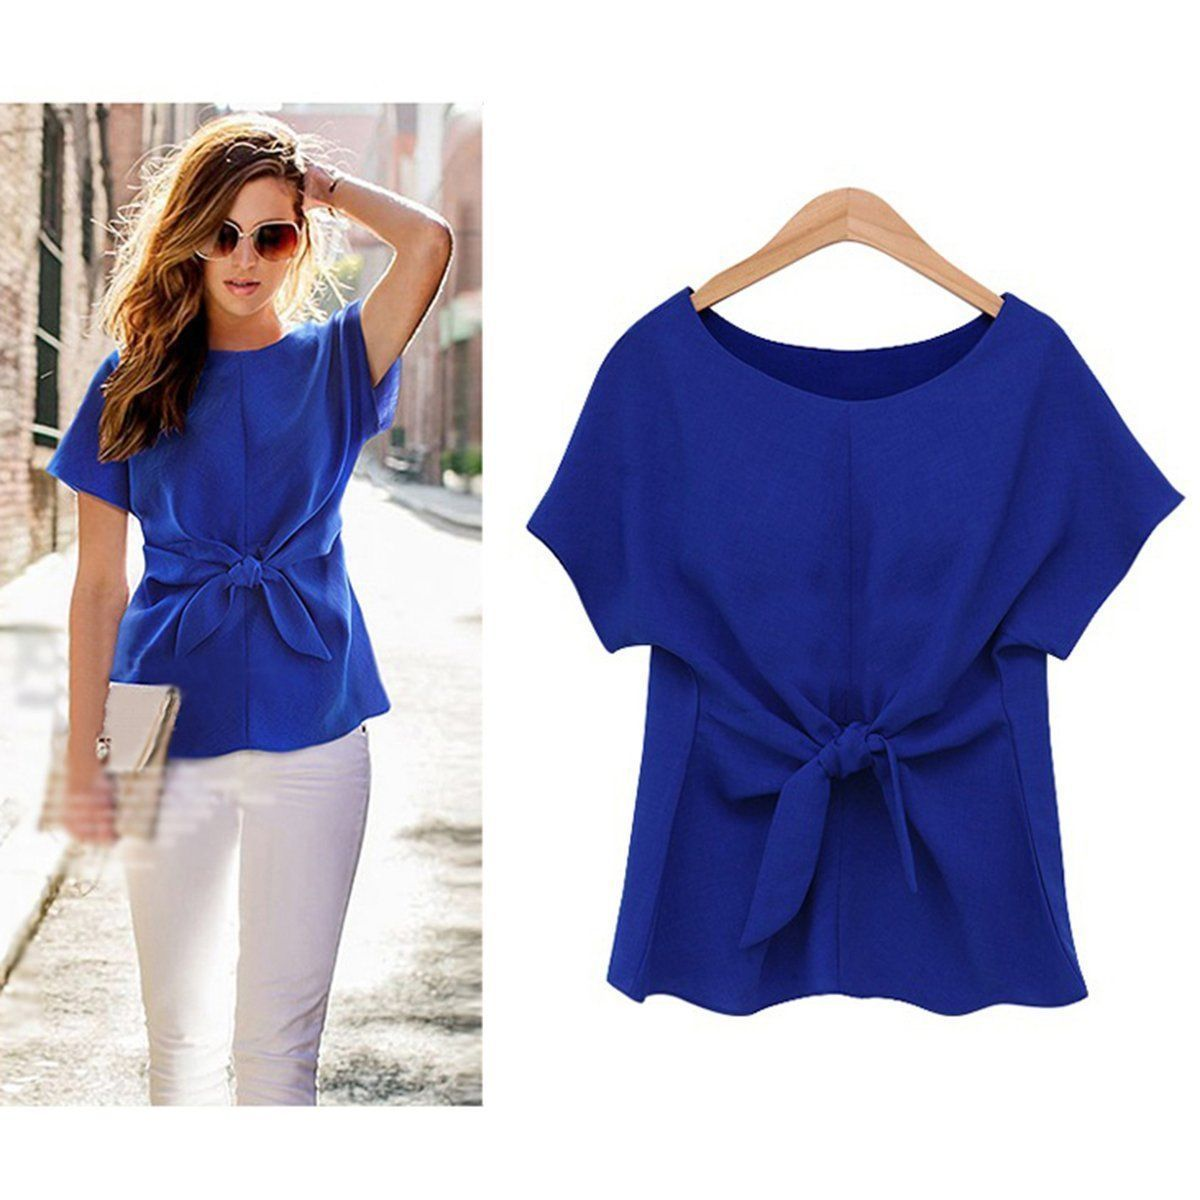 New Arrival   Elegant Womens Ladies Short Sleeve Front Bandage Casual Chiffon Shirt Tops T-Shirt Three Colors